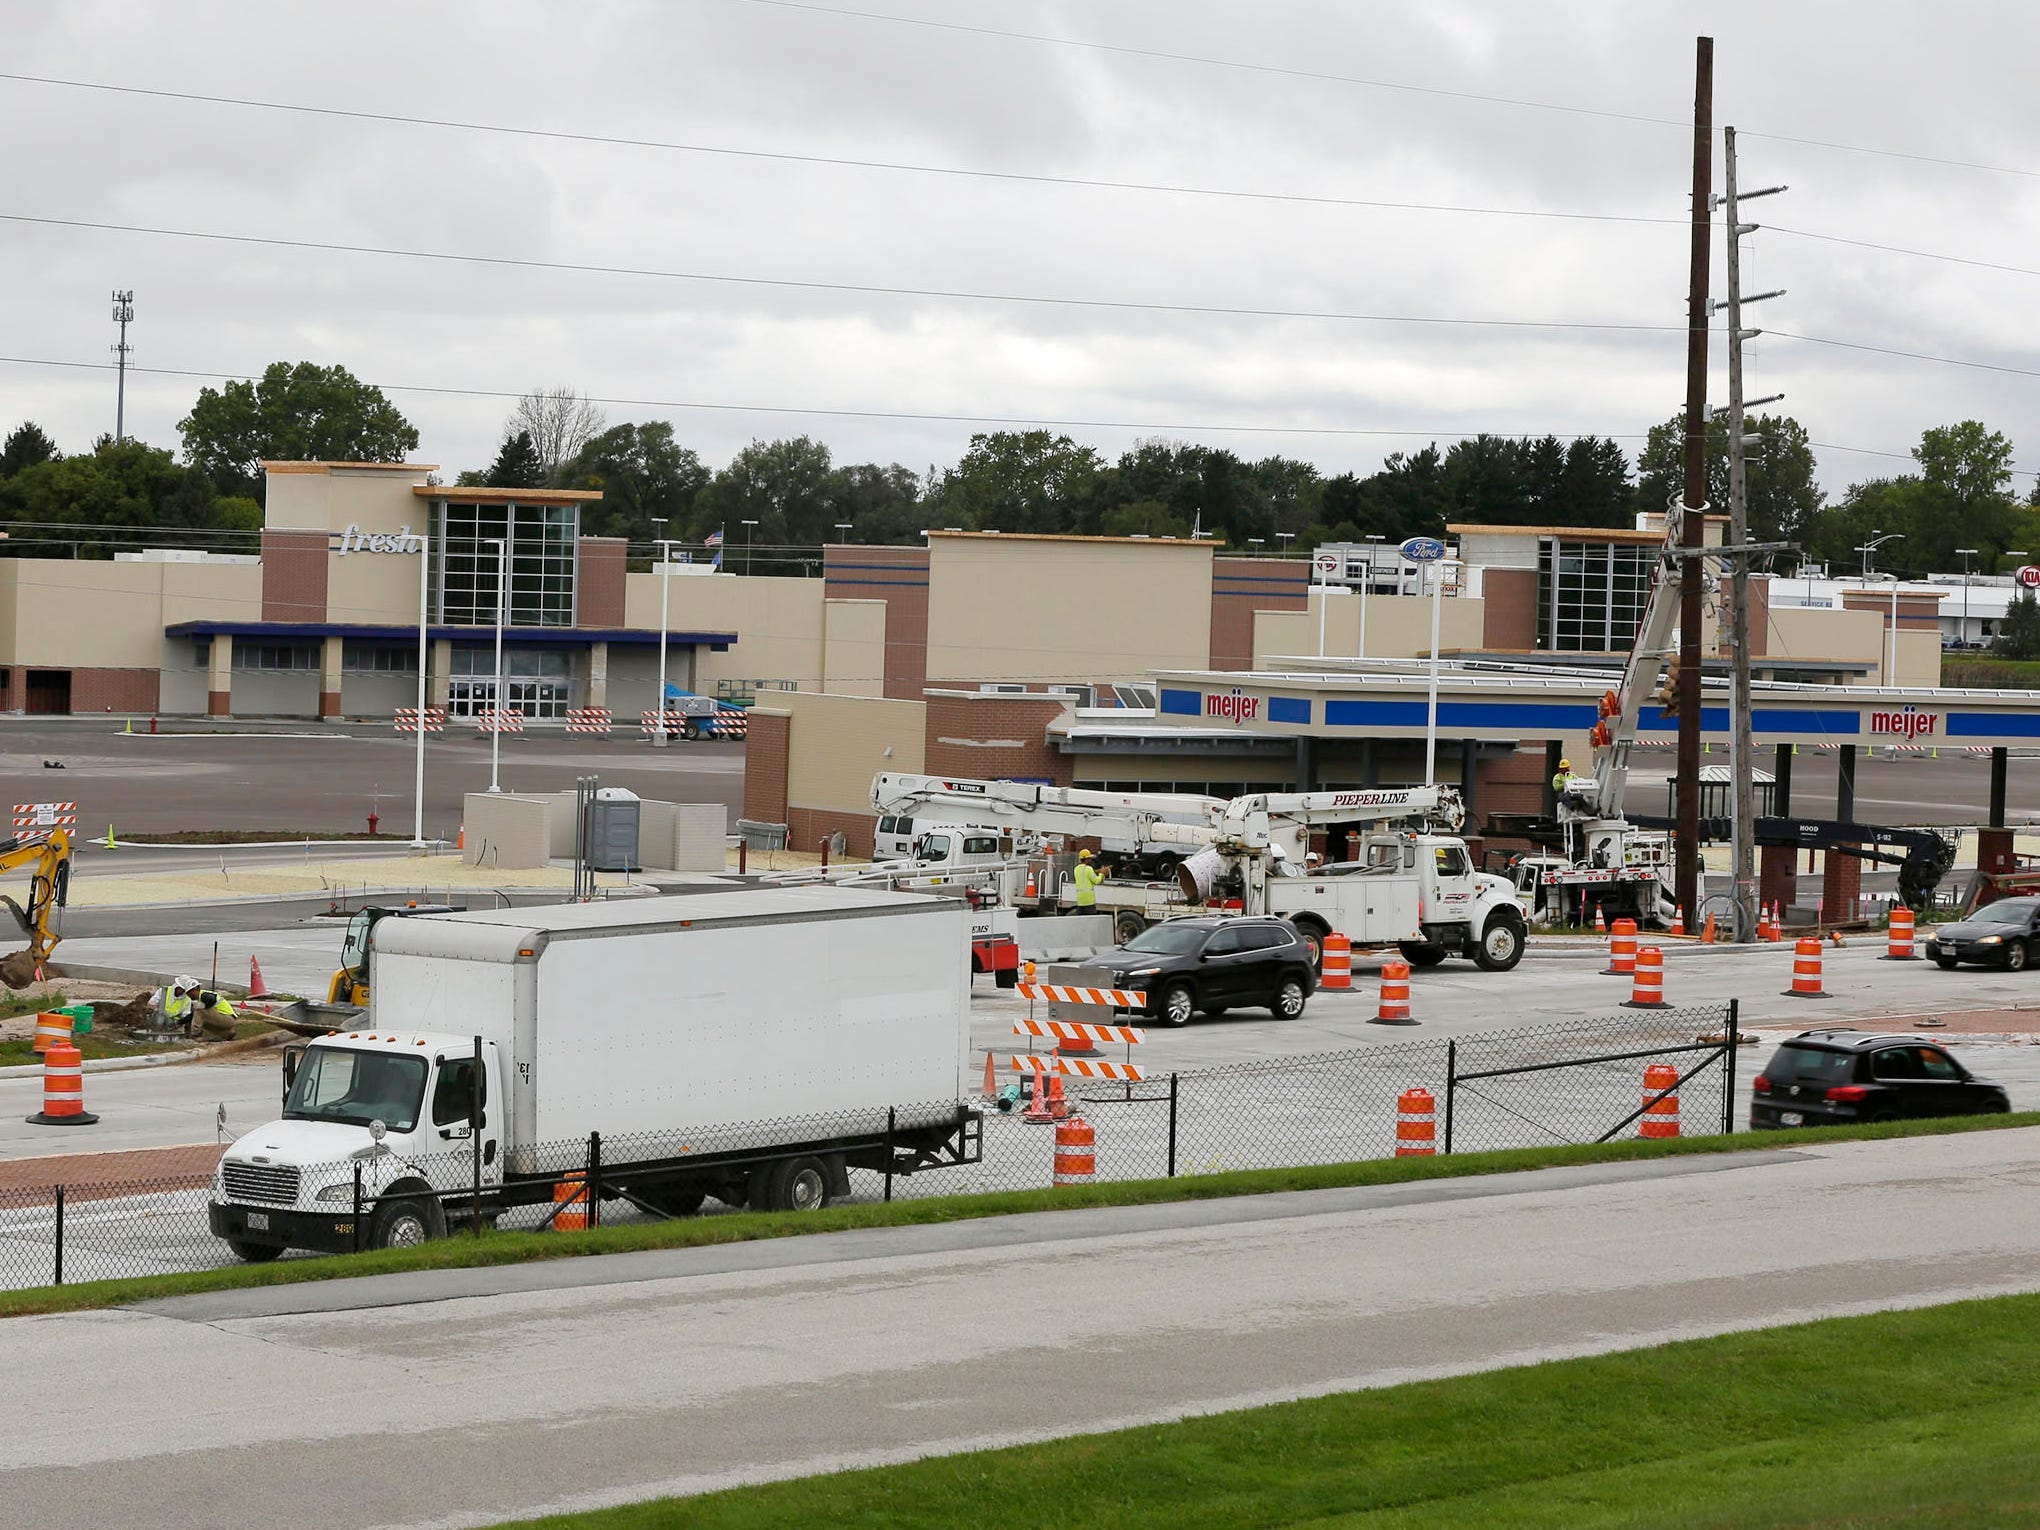 The Meijer store under construction where a majority of Memorial Mall used to be is a beehive of activity with trucks and construction gathered around work areas, Tuesday, October 2, 2018, in Sheboygan, Wis.